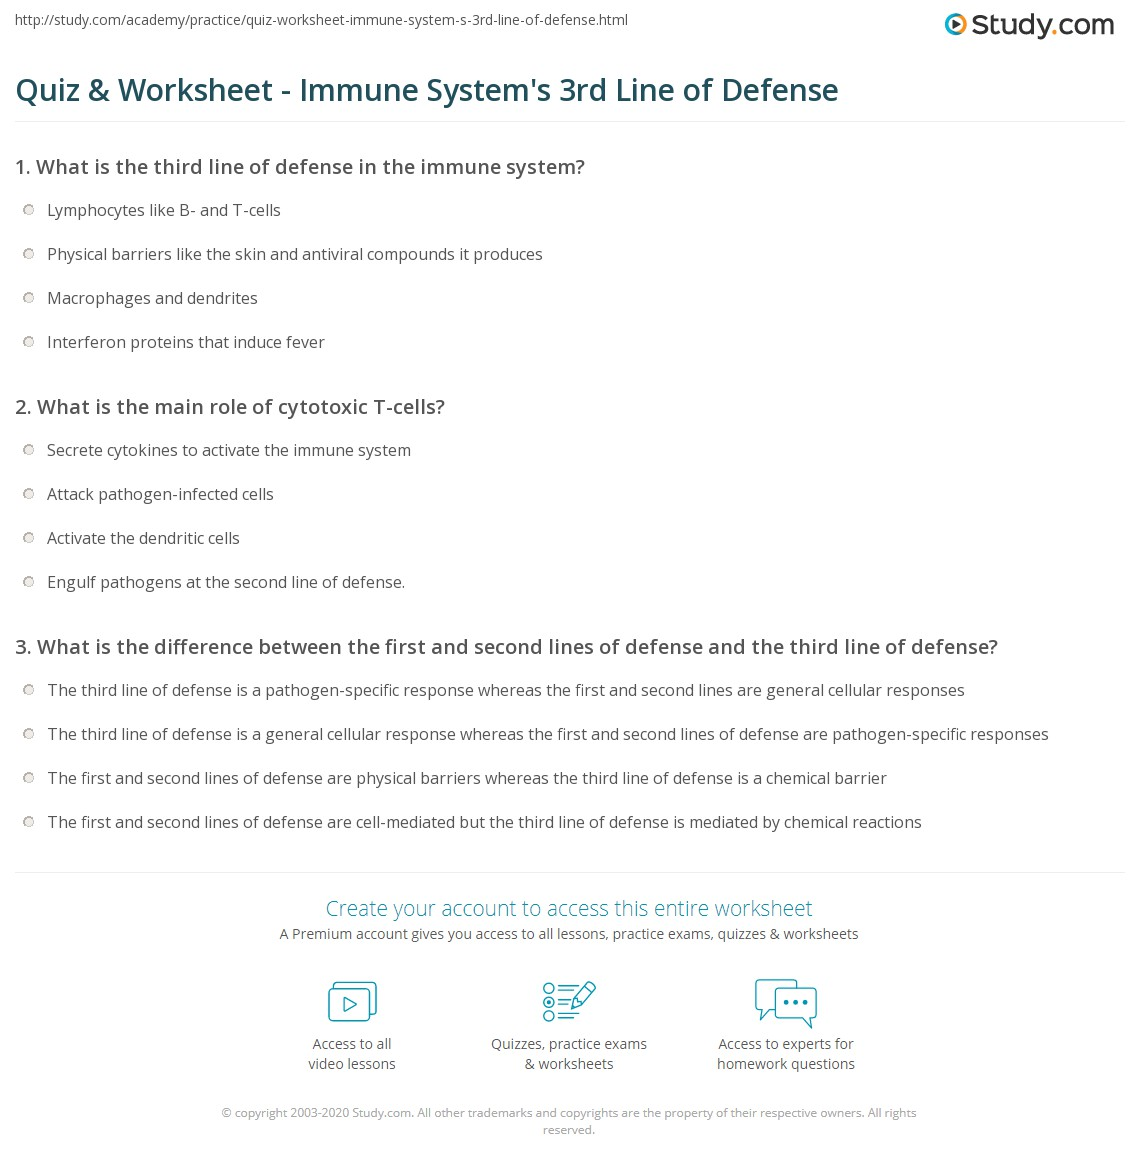 quiz worksheet immune system 39 s 3rd line of defense. Black Bedroom Furniture Sets. Home Design Ideas